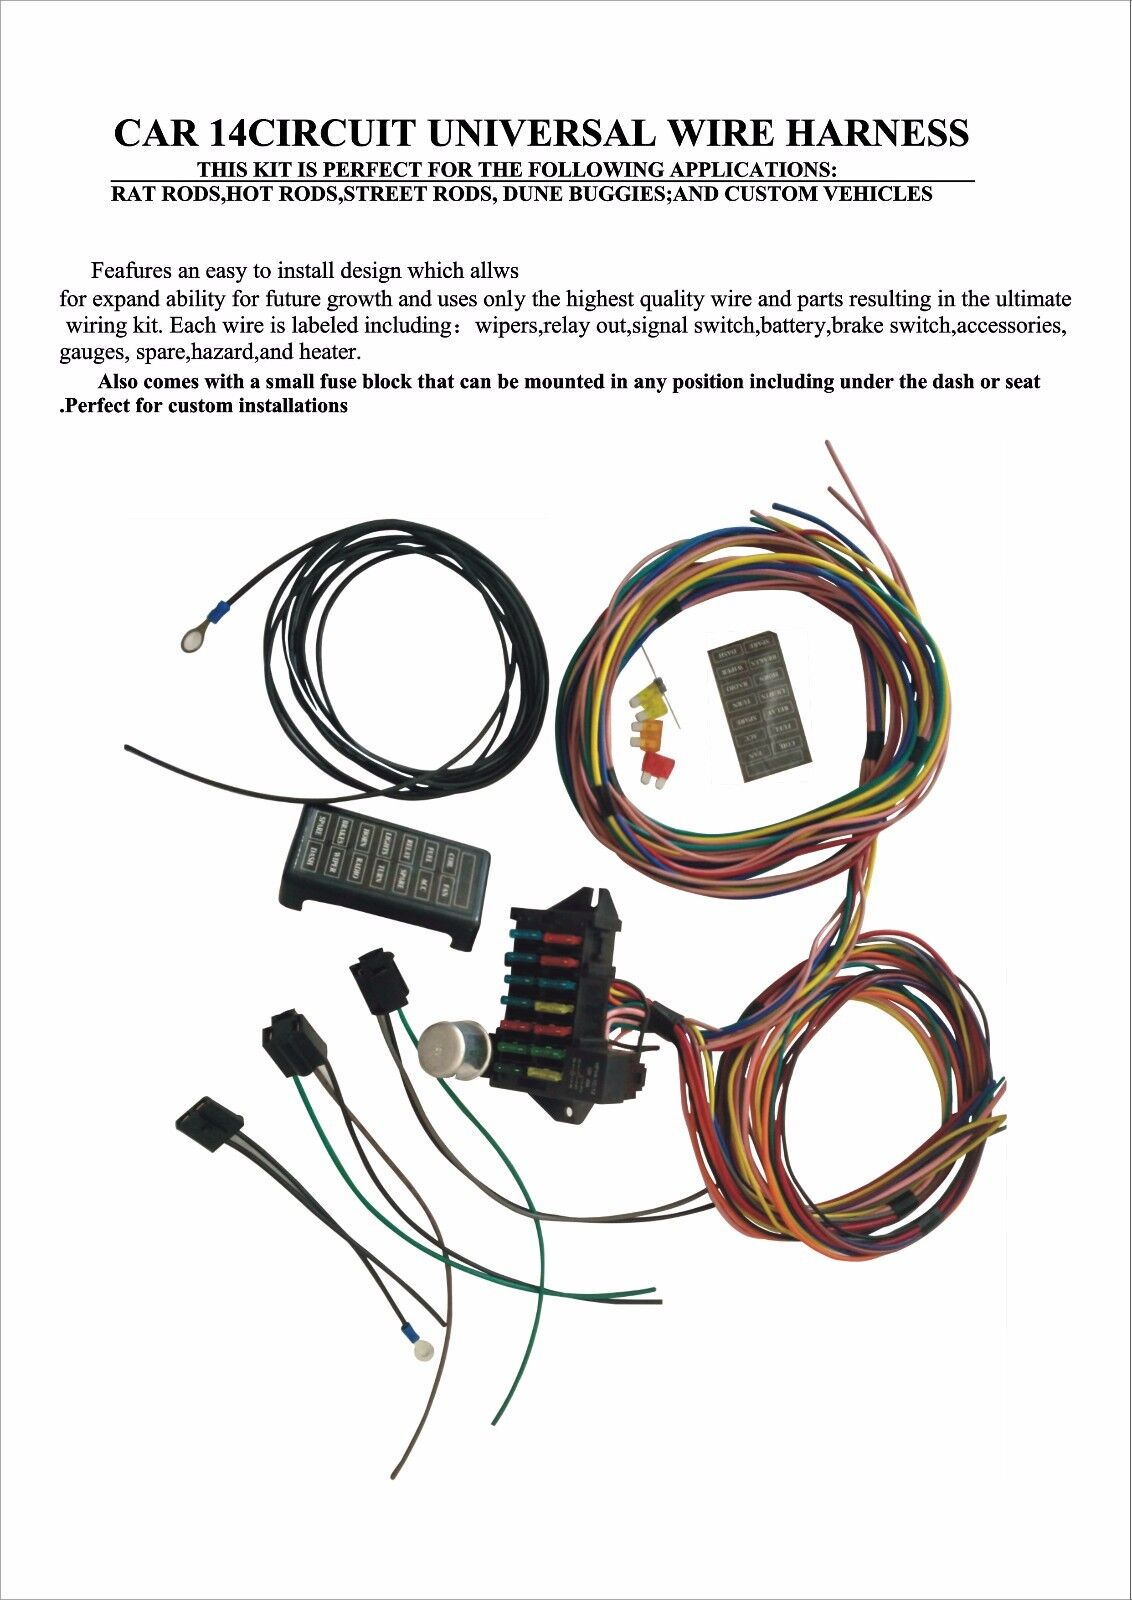 Auto Meter Wiring Kits Electrical Diagrams Classic Hot Rod Diagram 4 Gauge Harness Universal Circuit And Hub U2022 Fuel Level